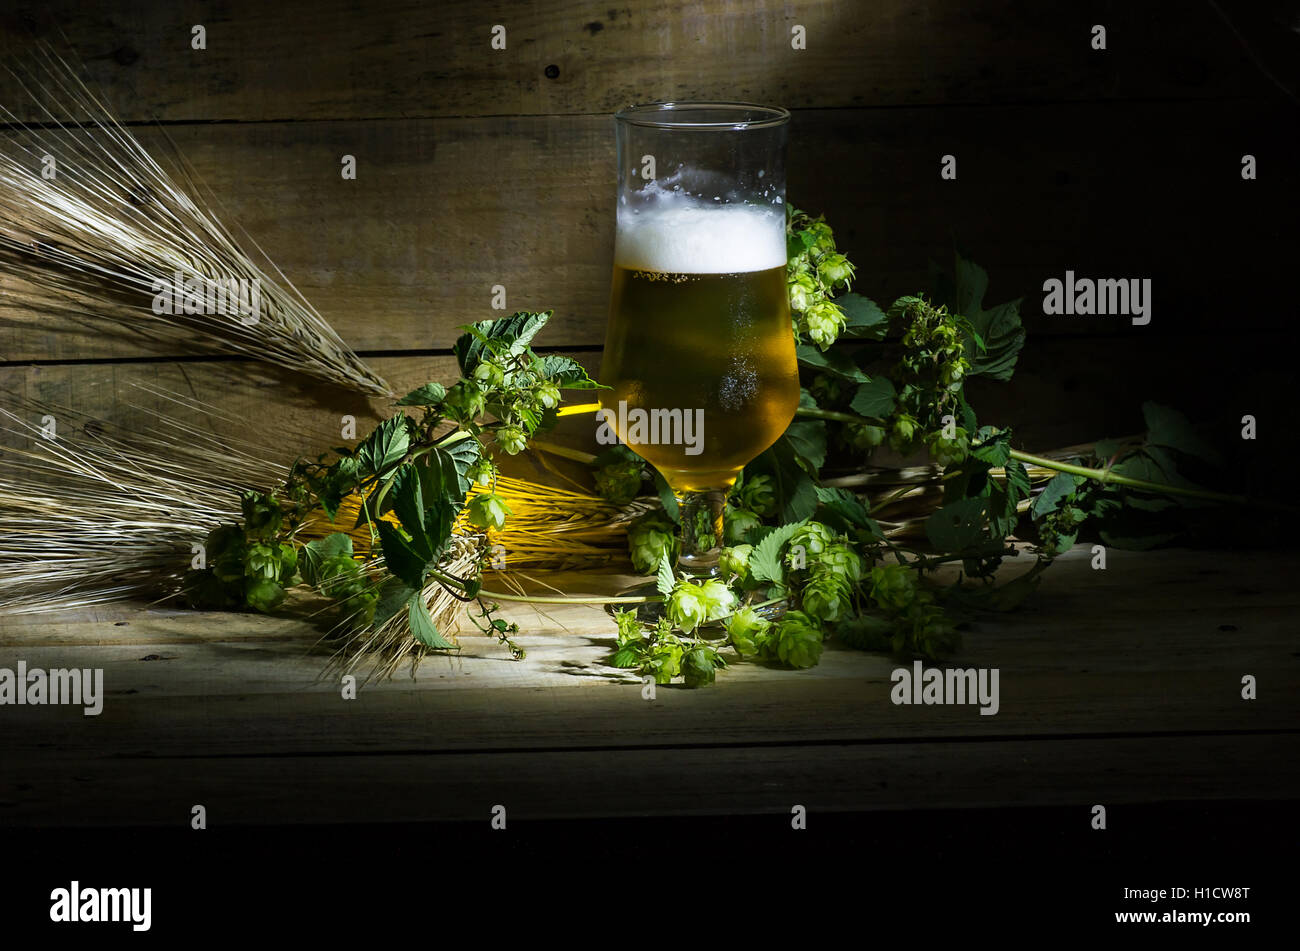 Still life with beer, hops and ears of corn on the wooden table - Stock Image